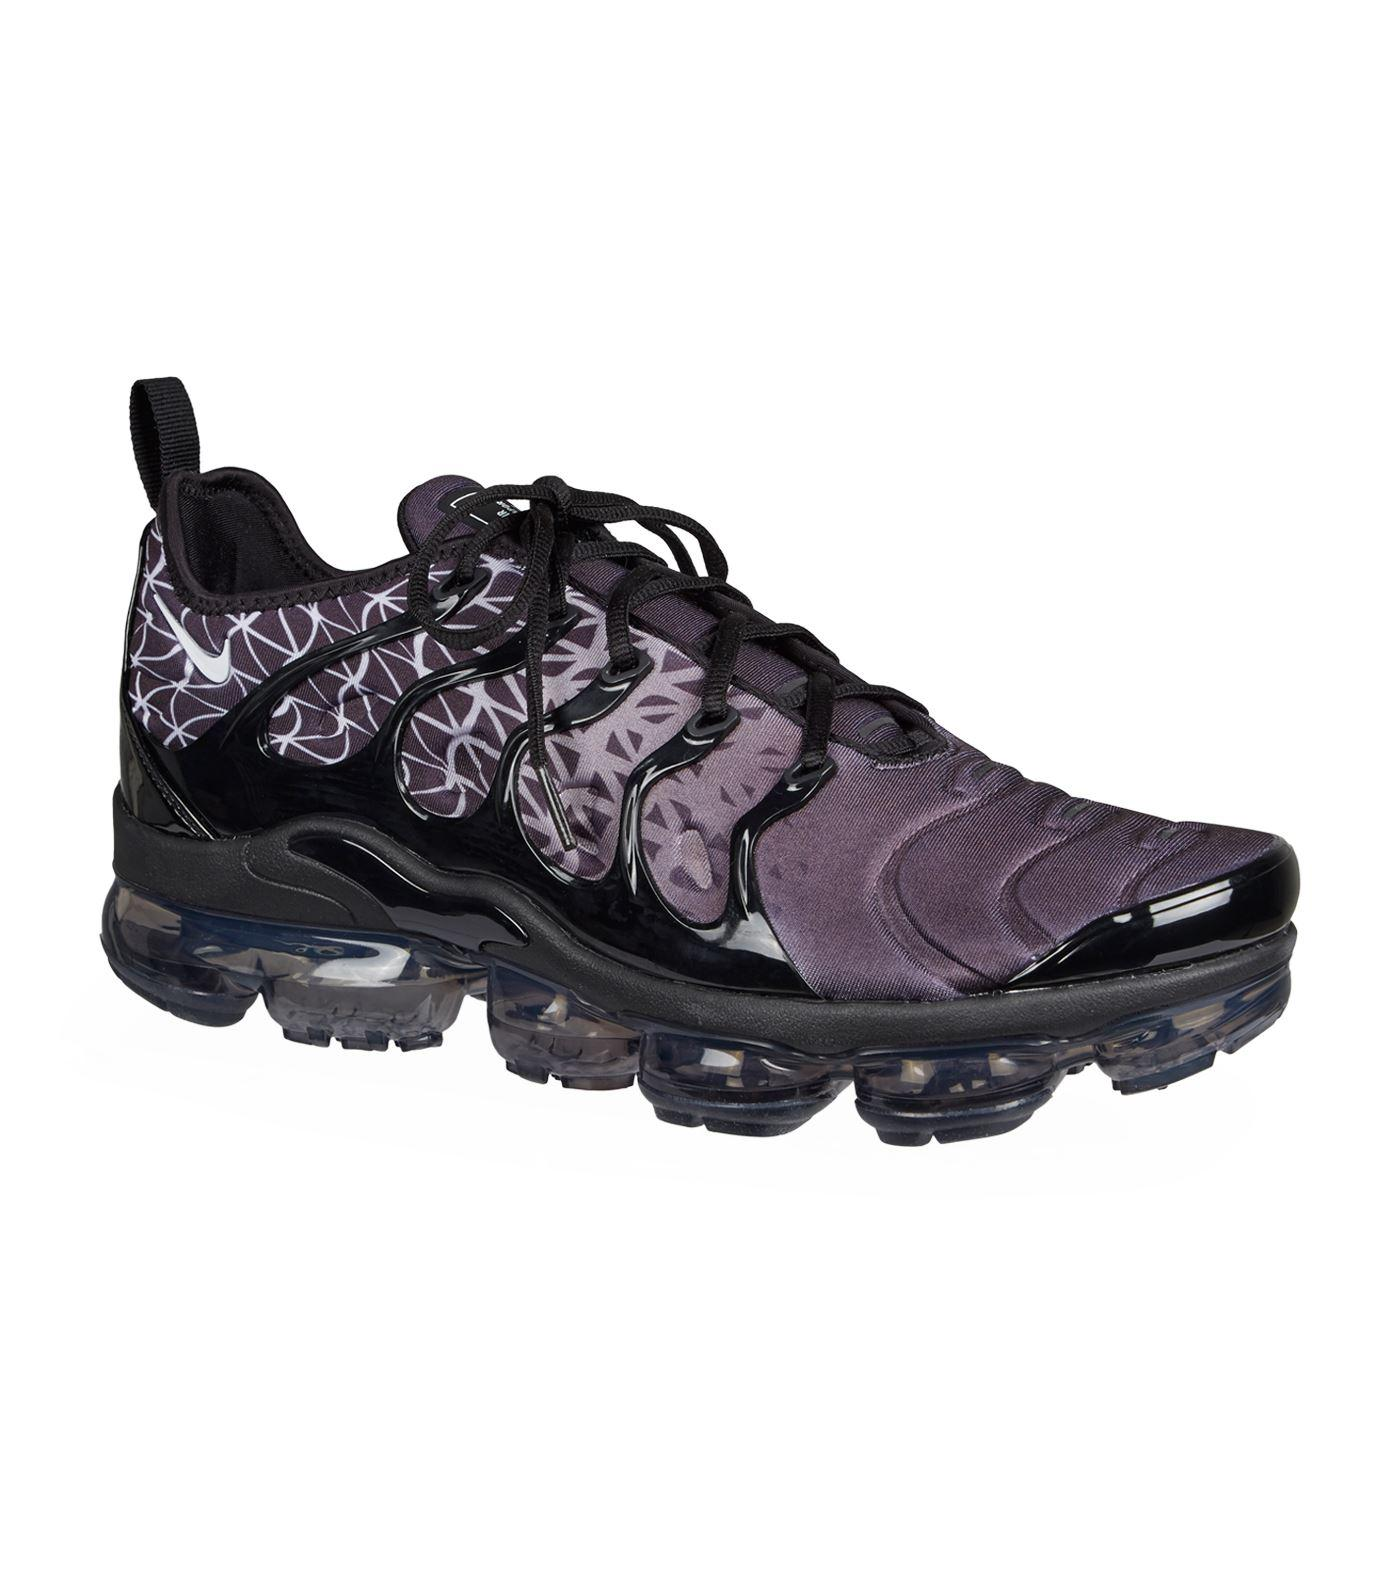 b79bc6fe9b0 Lyst - Nike Air Vapormax Plus Trainers in Black for Men